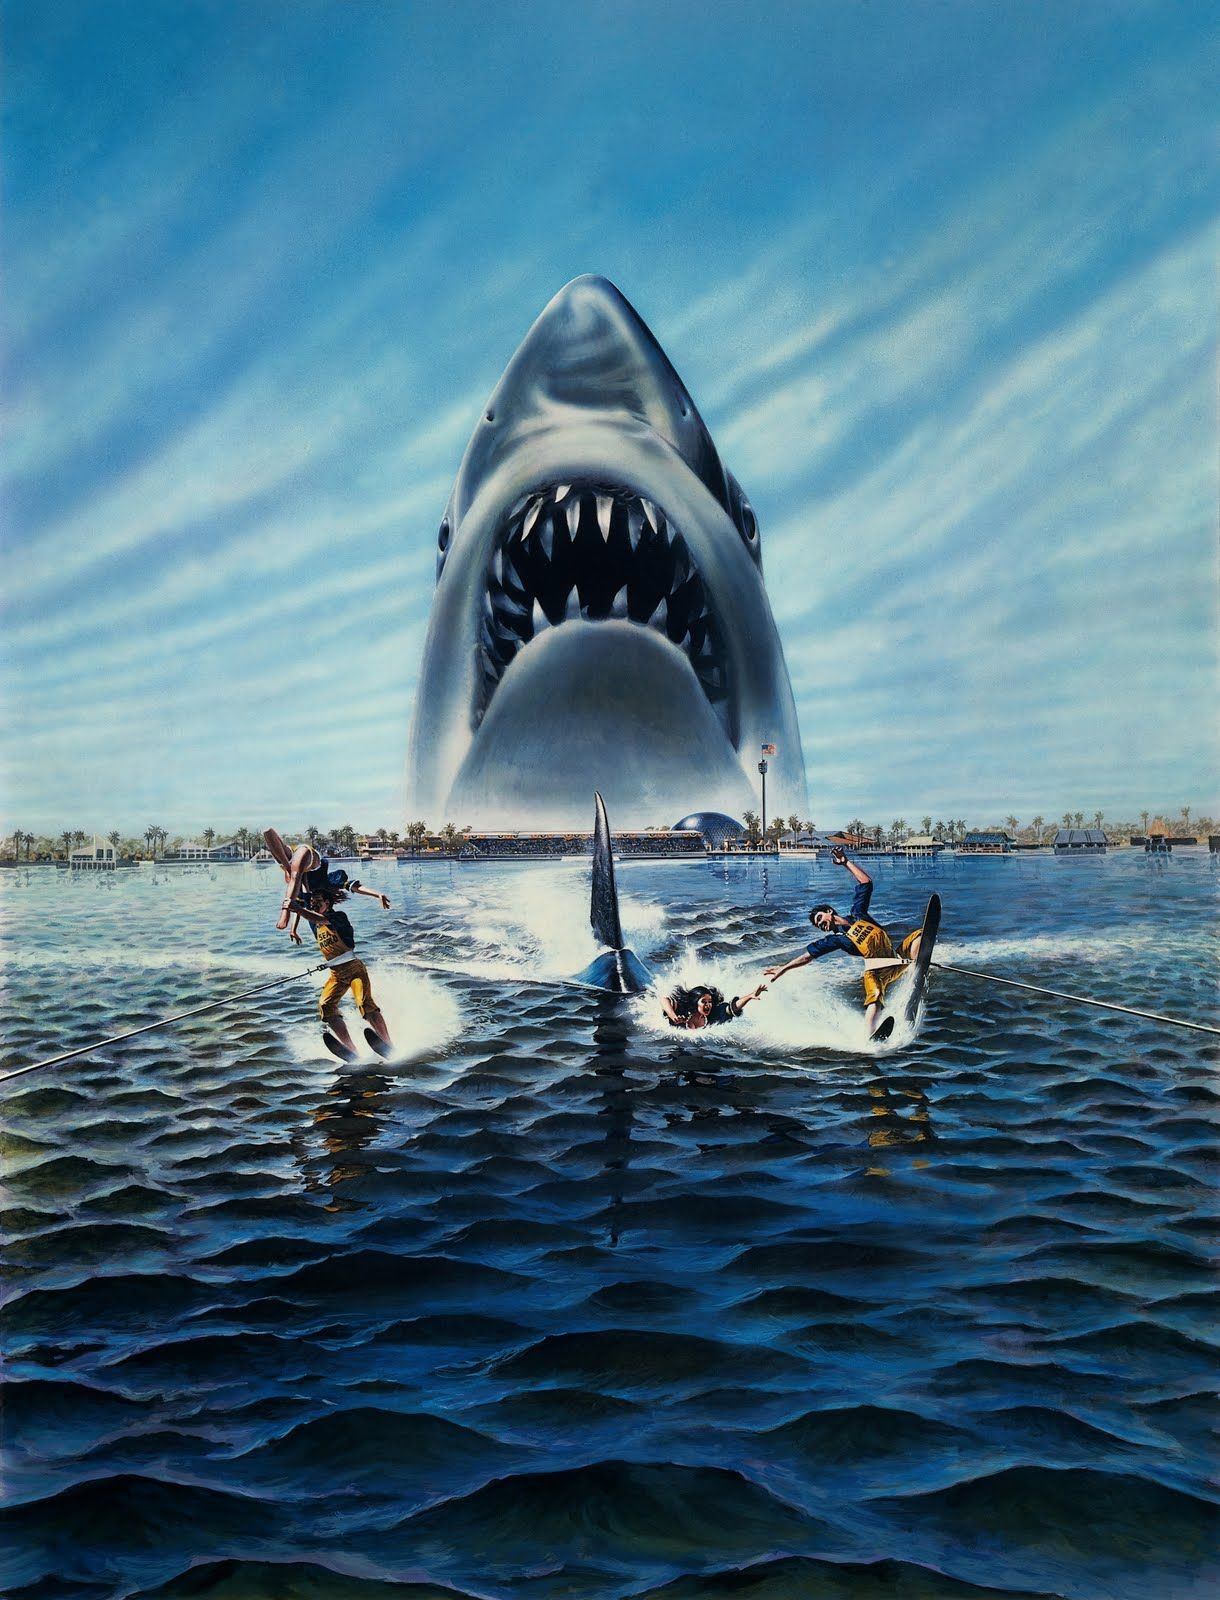 jaws 3the best jaws movie movies pinterest